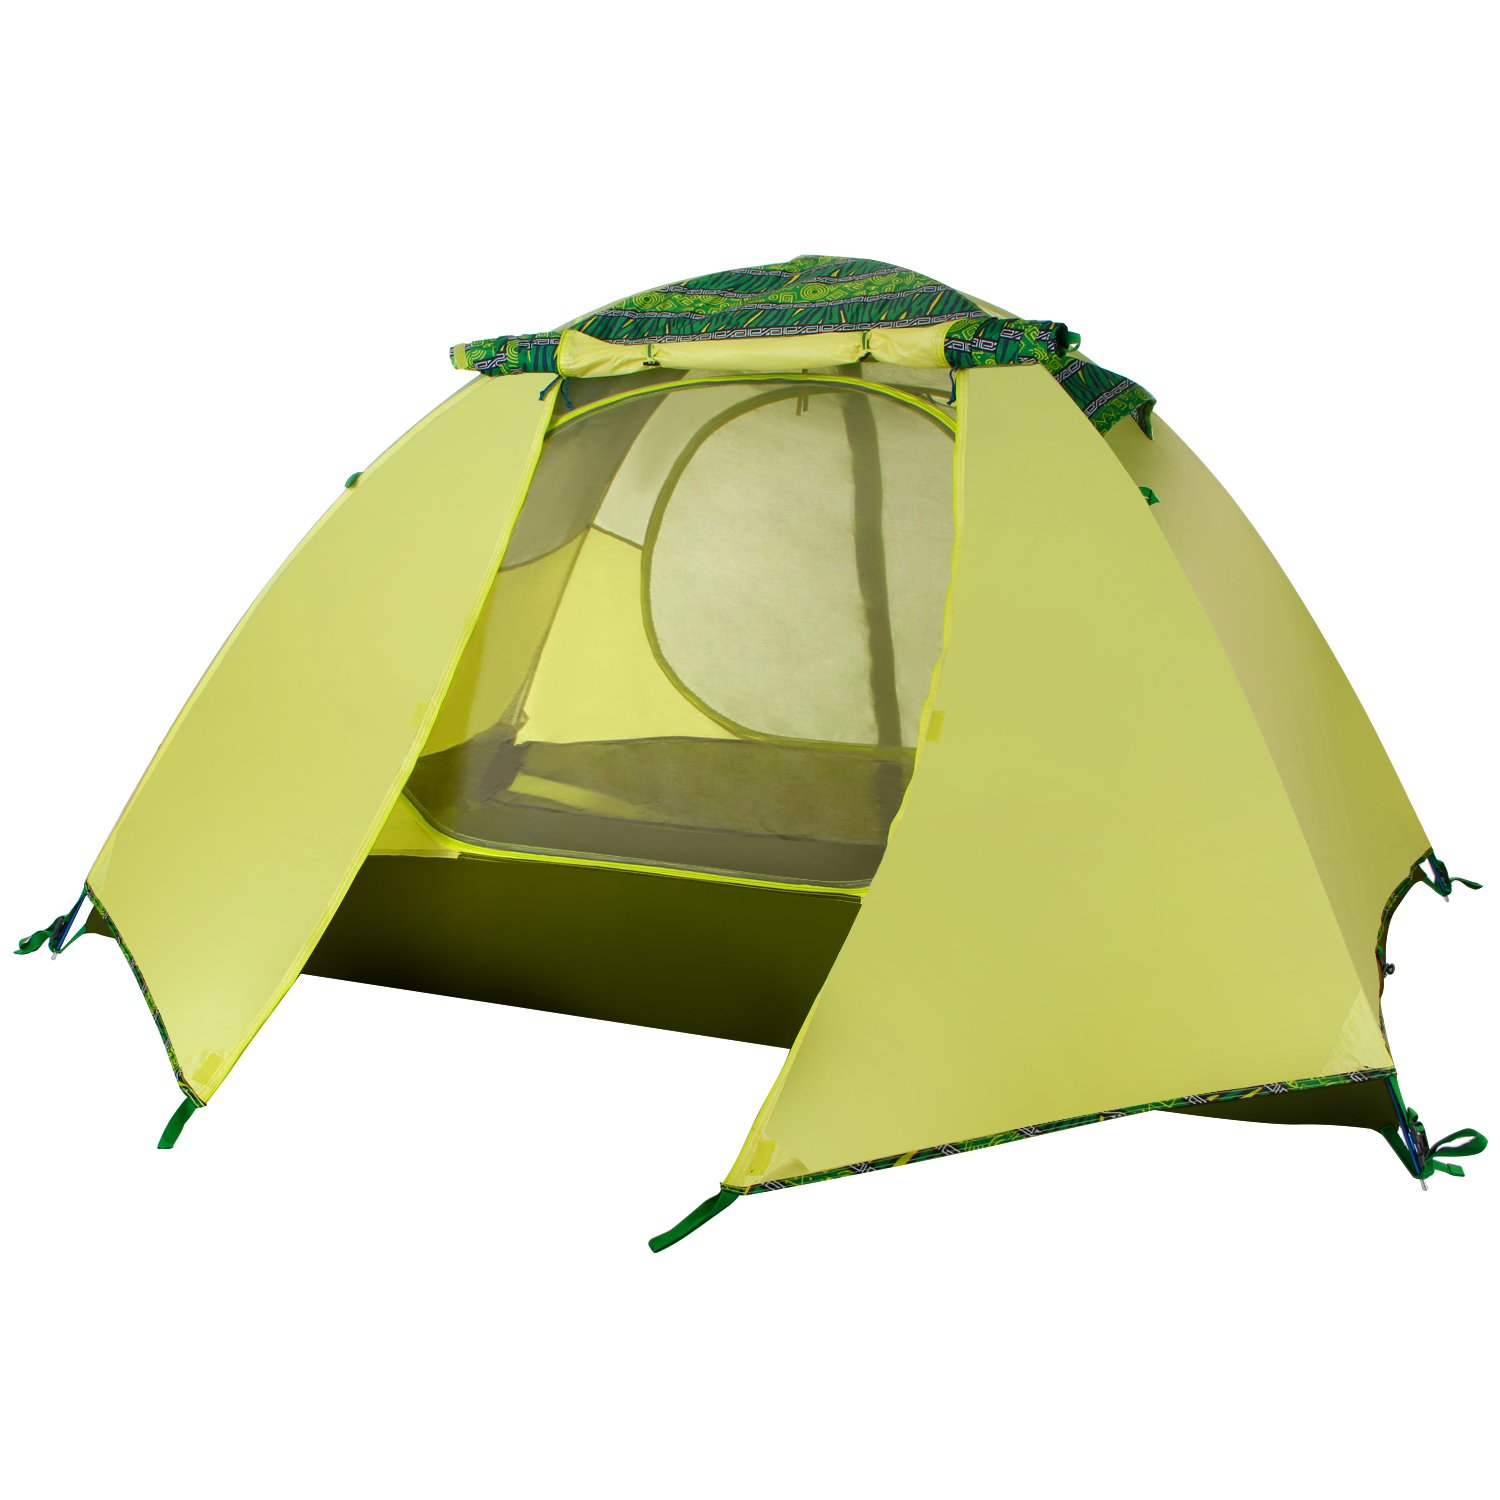 Amazon.com  WolfWise 2-Person 3-4 Season Backpacking Tent with USB LED Light String Green  Sports u0026 Outdoors  sc 1 st  Amazon.com & Amazon.com : WolfWise 2-Person 3-4 Season Backpacking Tent with ...